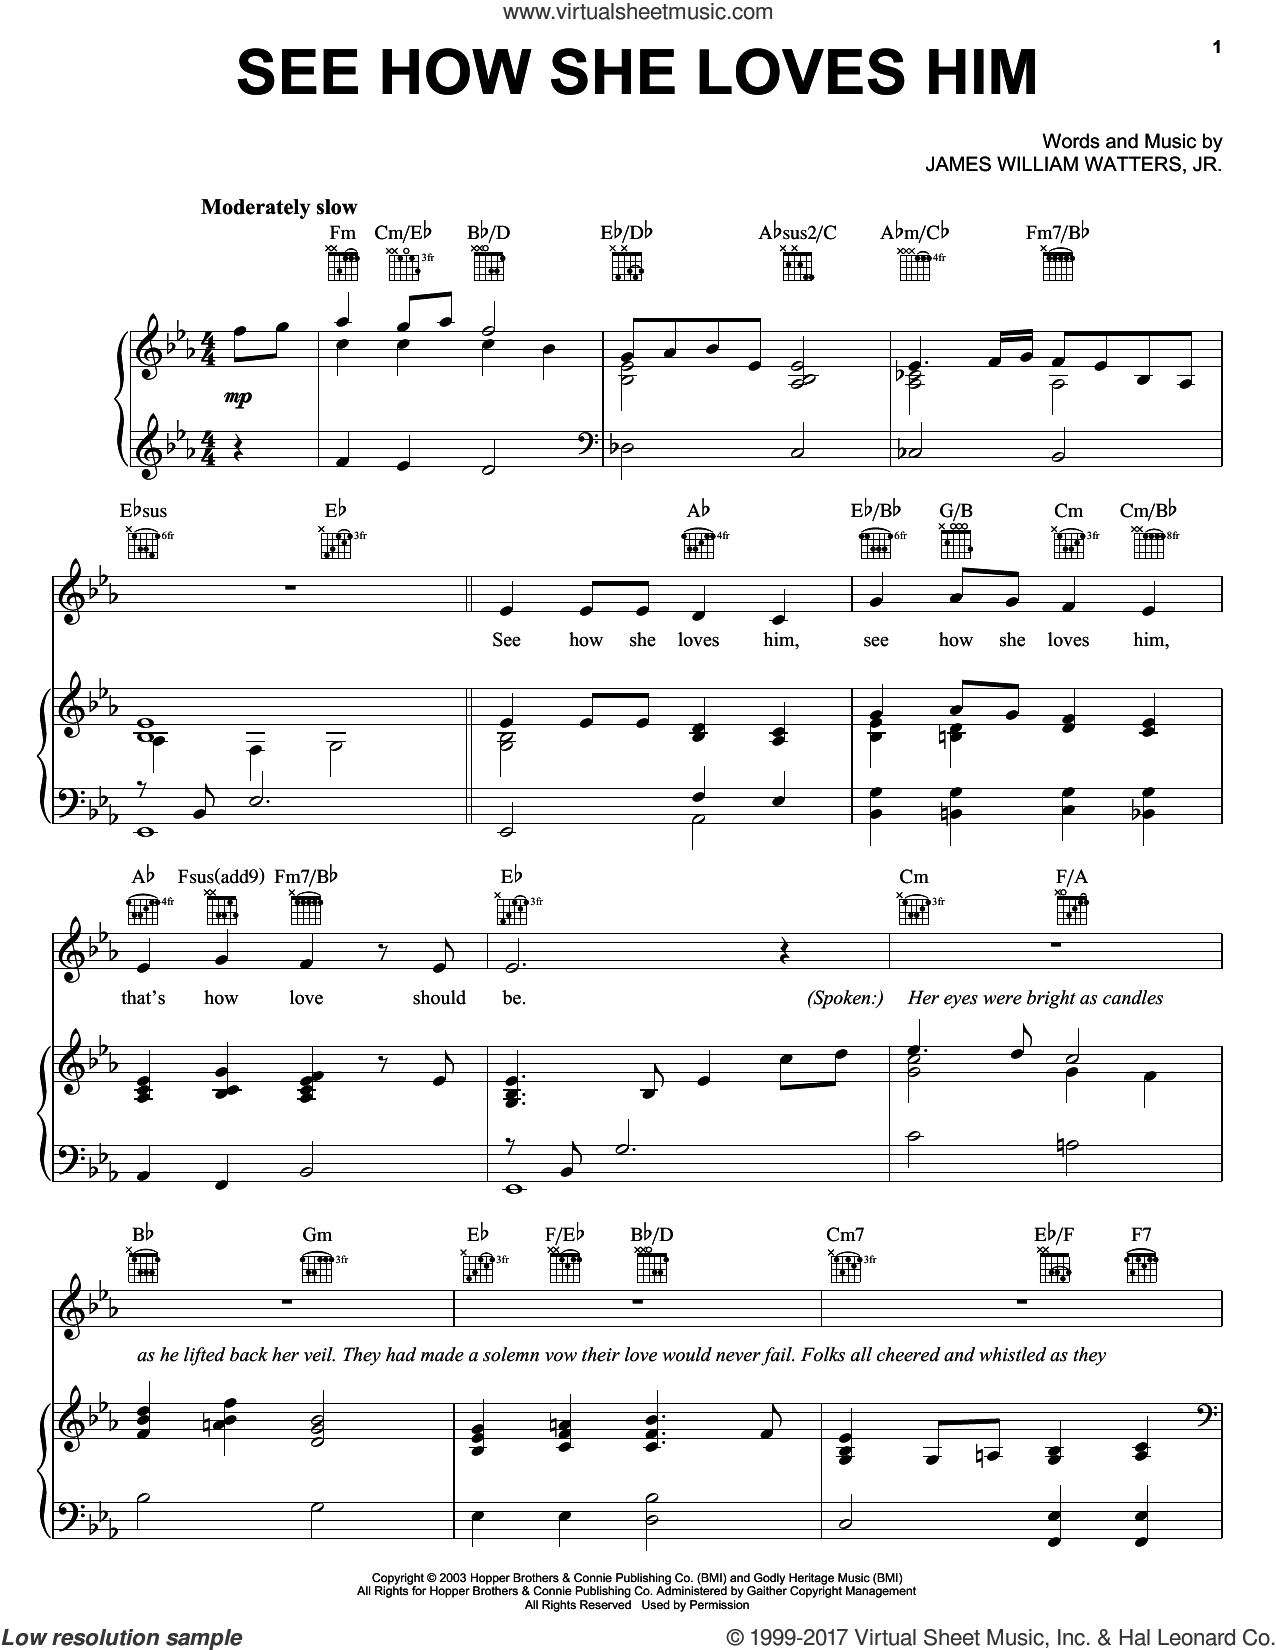 See How She Loves Him sheet music for voice, piano or guitar by The Hoppers and James William Watters, Jr., intermediate skill level